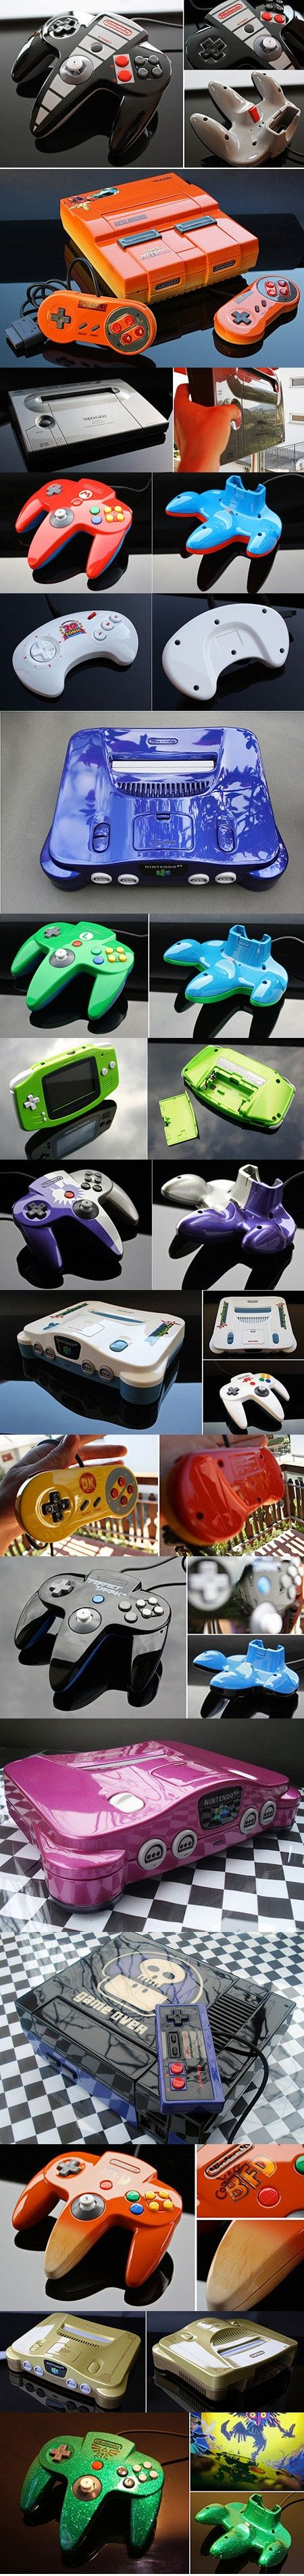 Japanese Ghost presents... Custom Nintendo Consoles